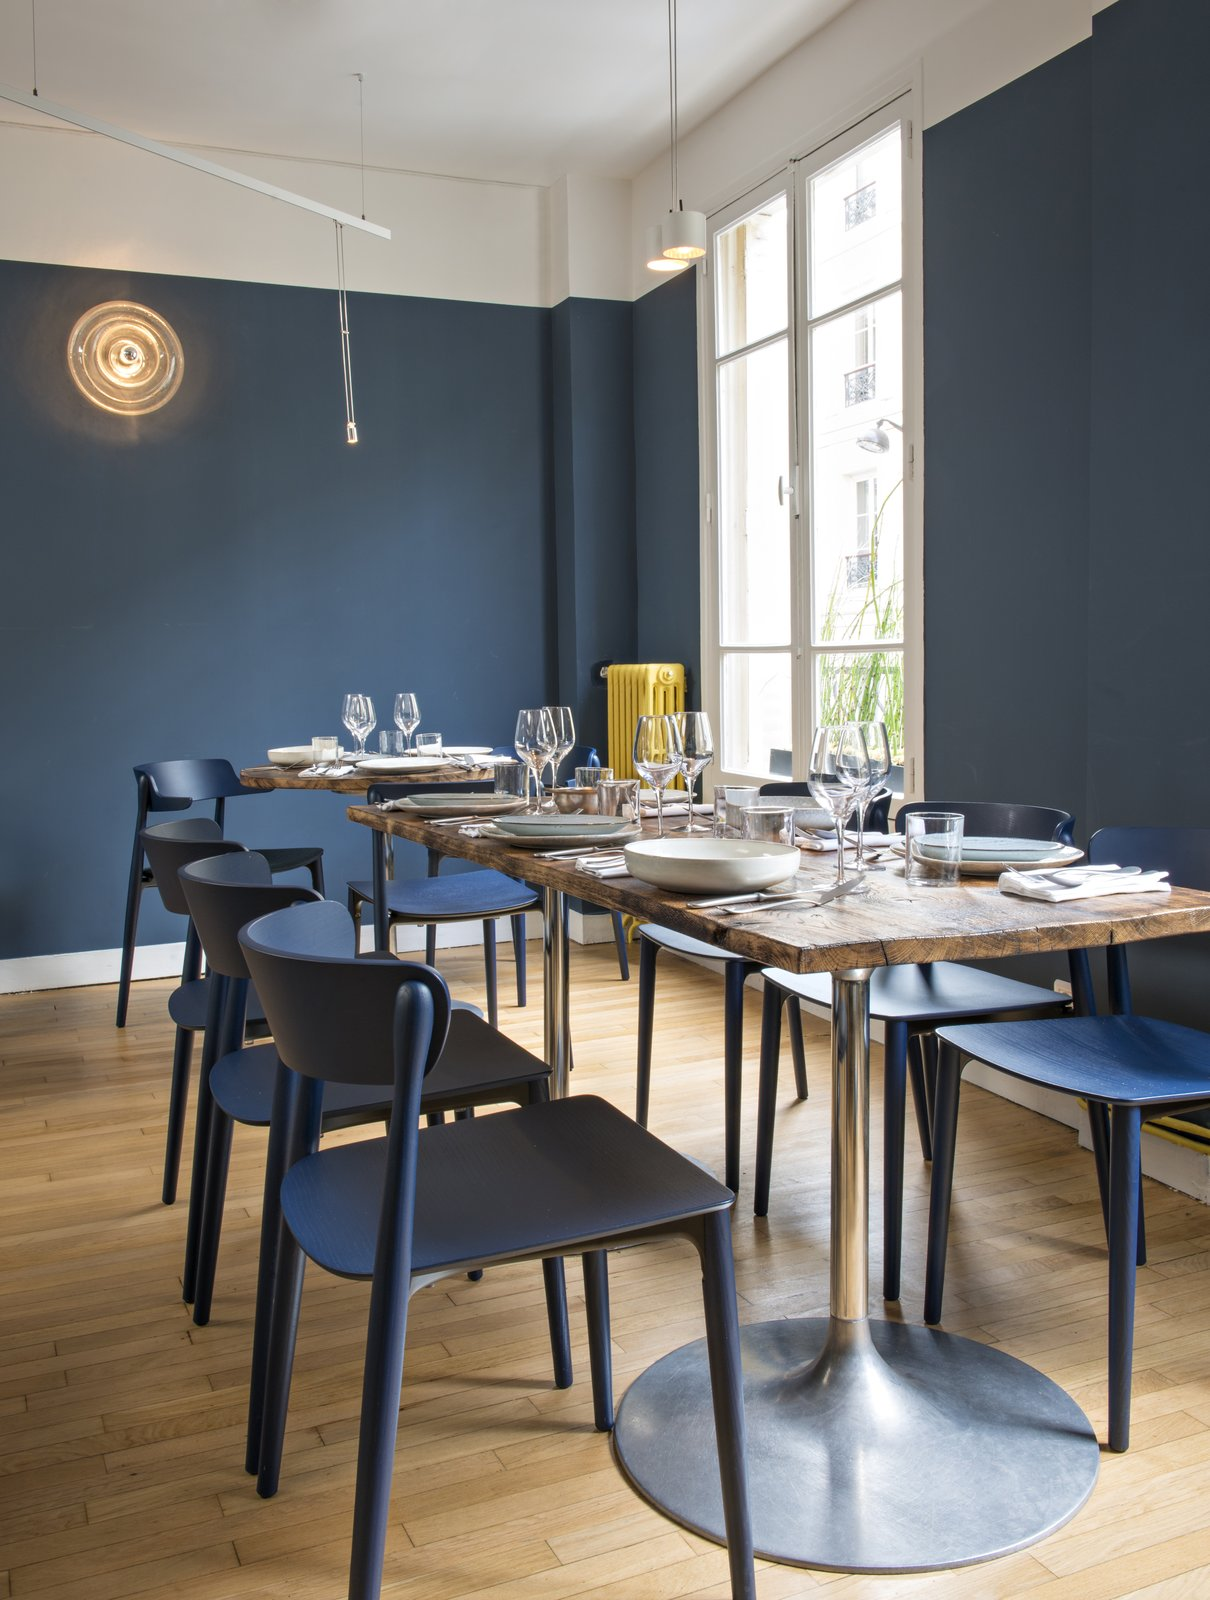 Sixty-five seats are accommodated between Belle Maison's two floors.